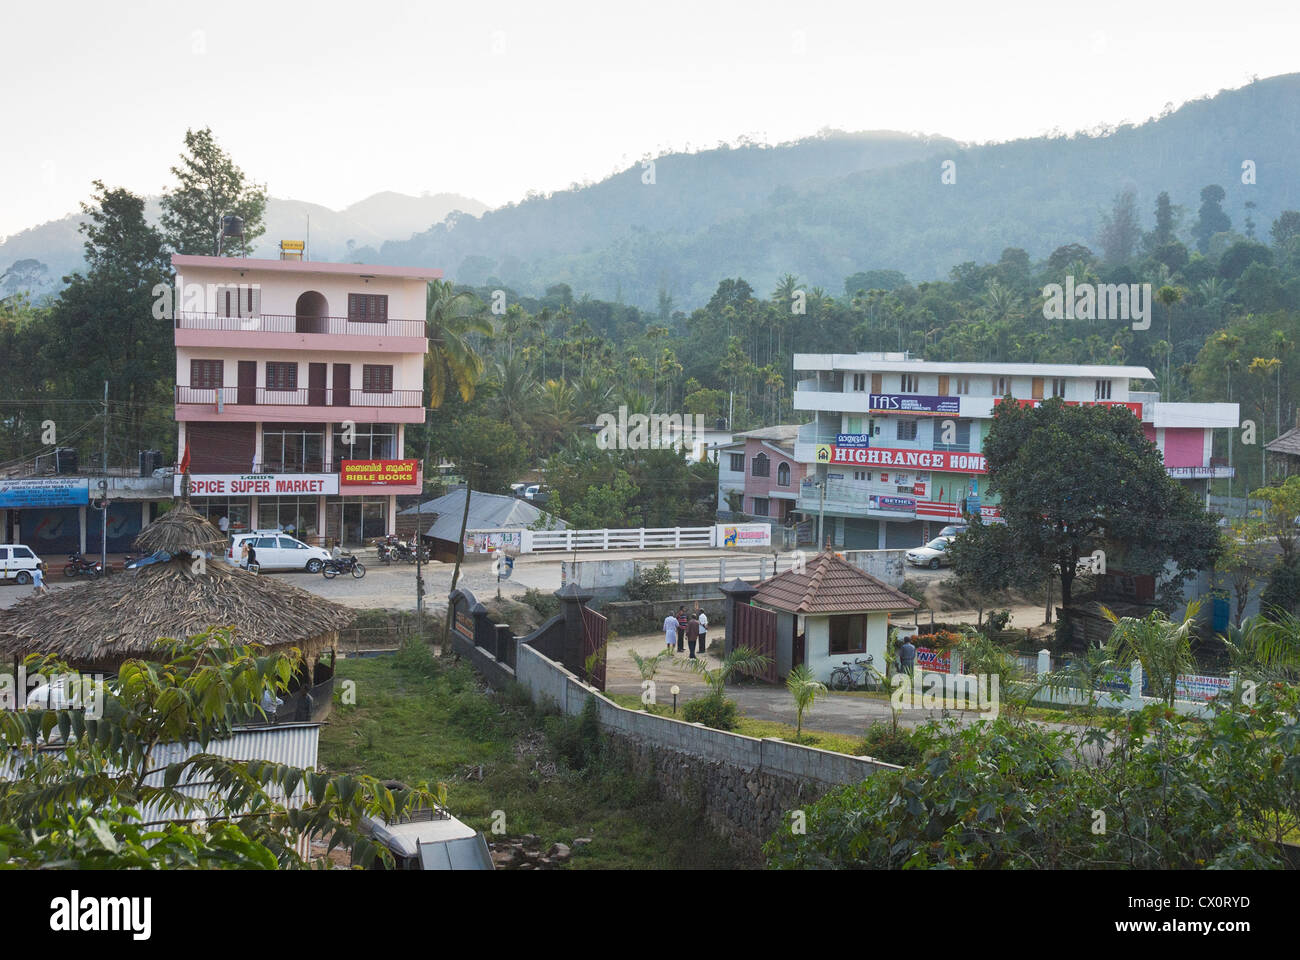 Elk201-3673 India, Kerala, Periyar, Kumily town - Stock Image